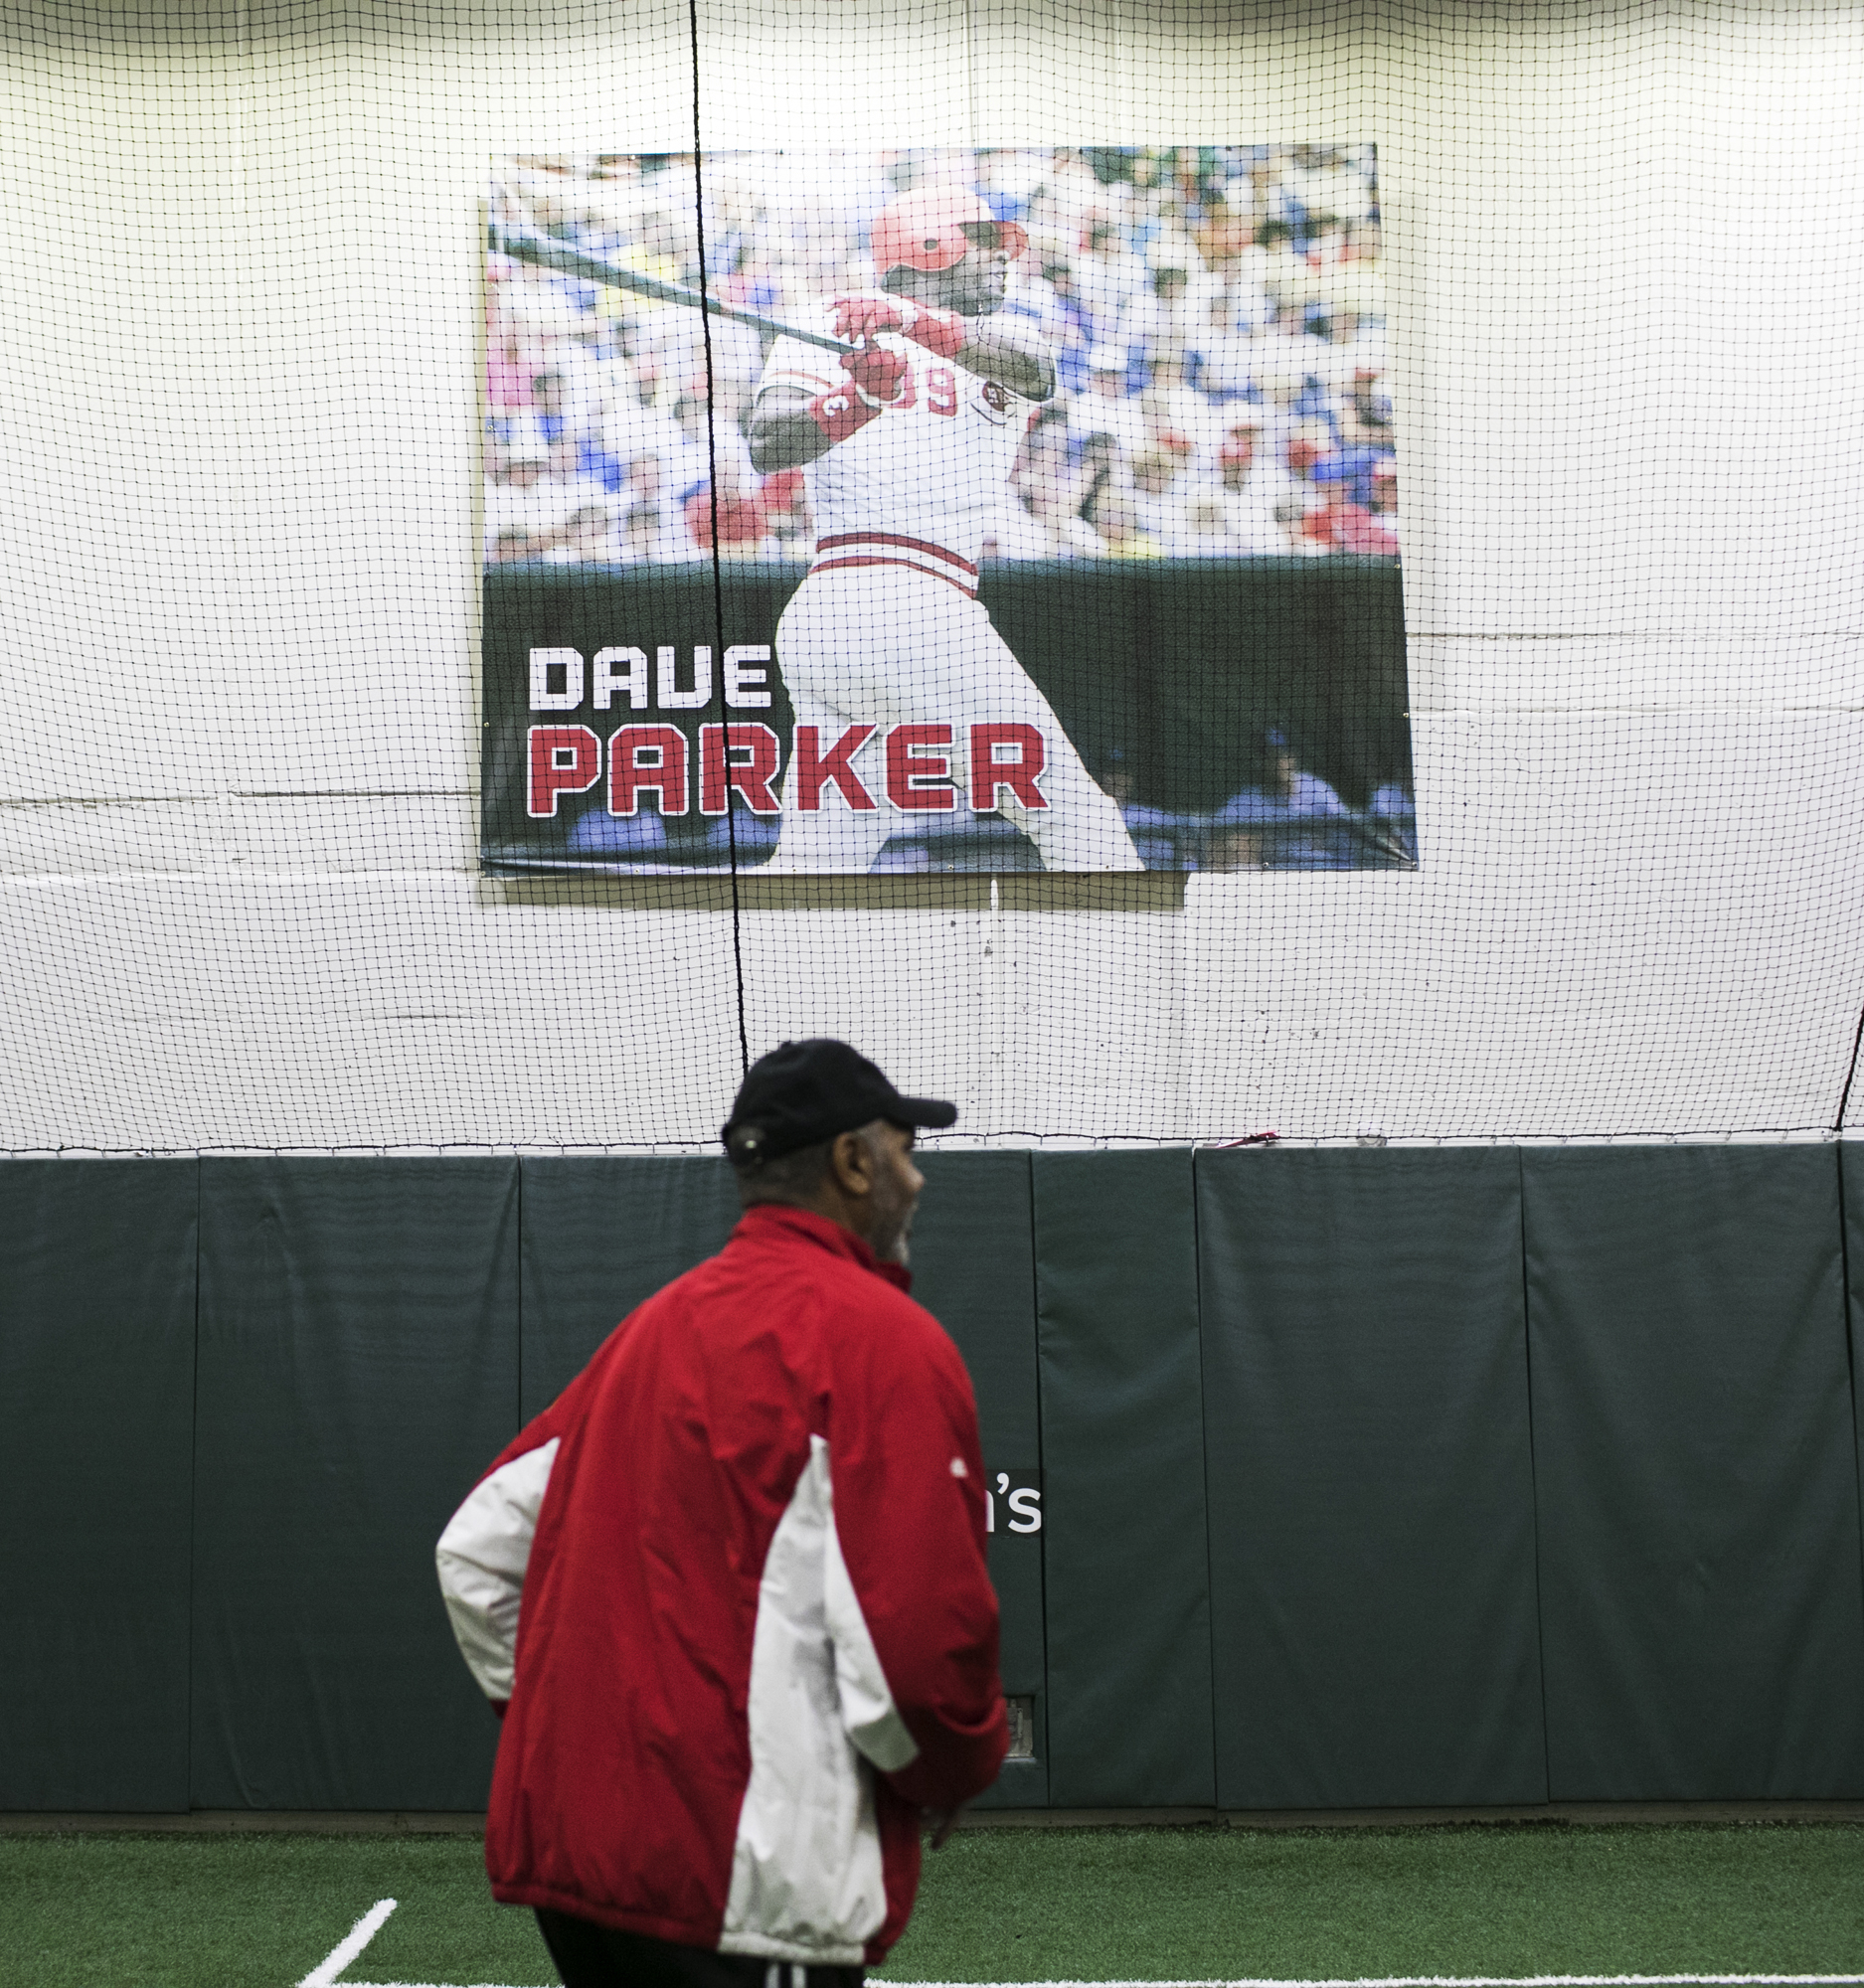 Dave Parker lives with Parkinson's disease as another Hall